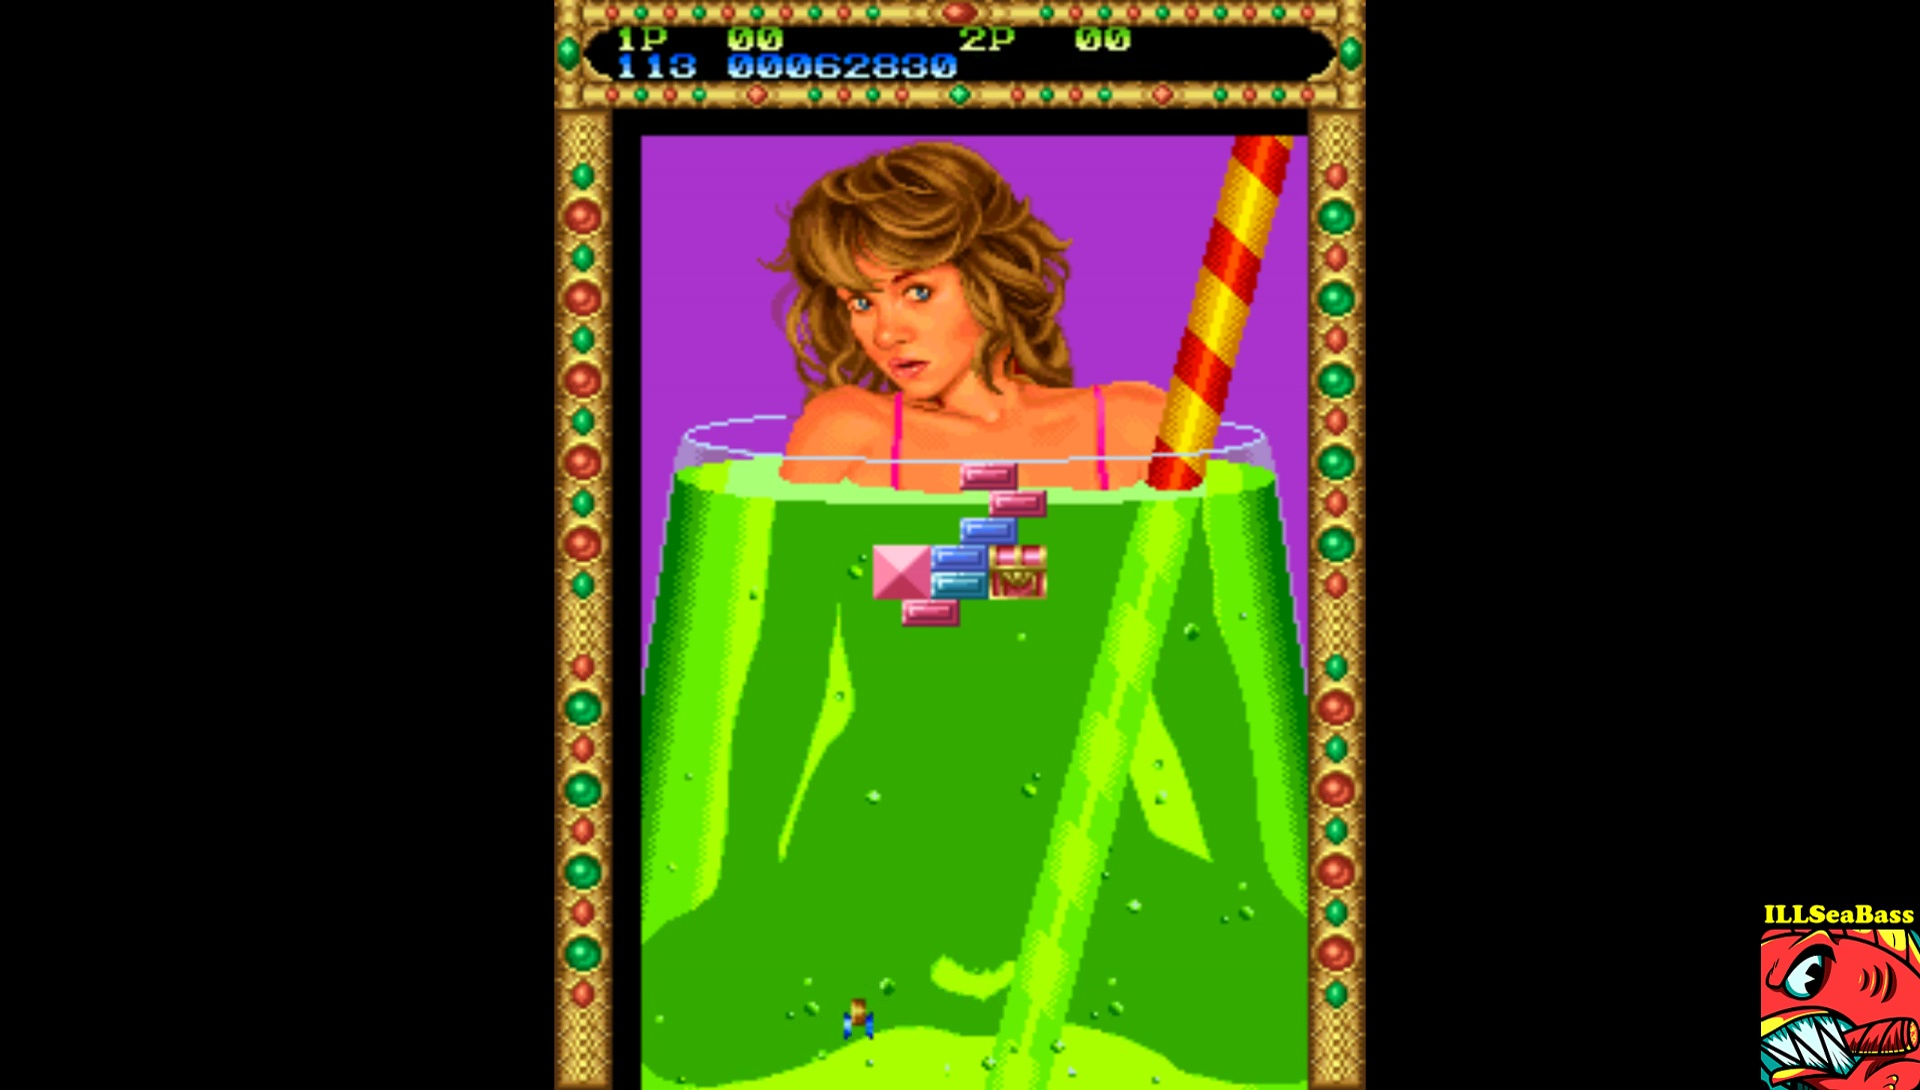 ILLSeaBass: Play Girls (Arcade Emulated / M.A.M.E.) 62,830 points on 2017-09-05 01:14:55